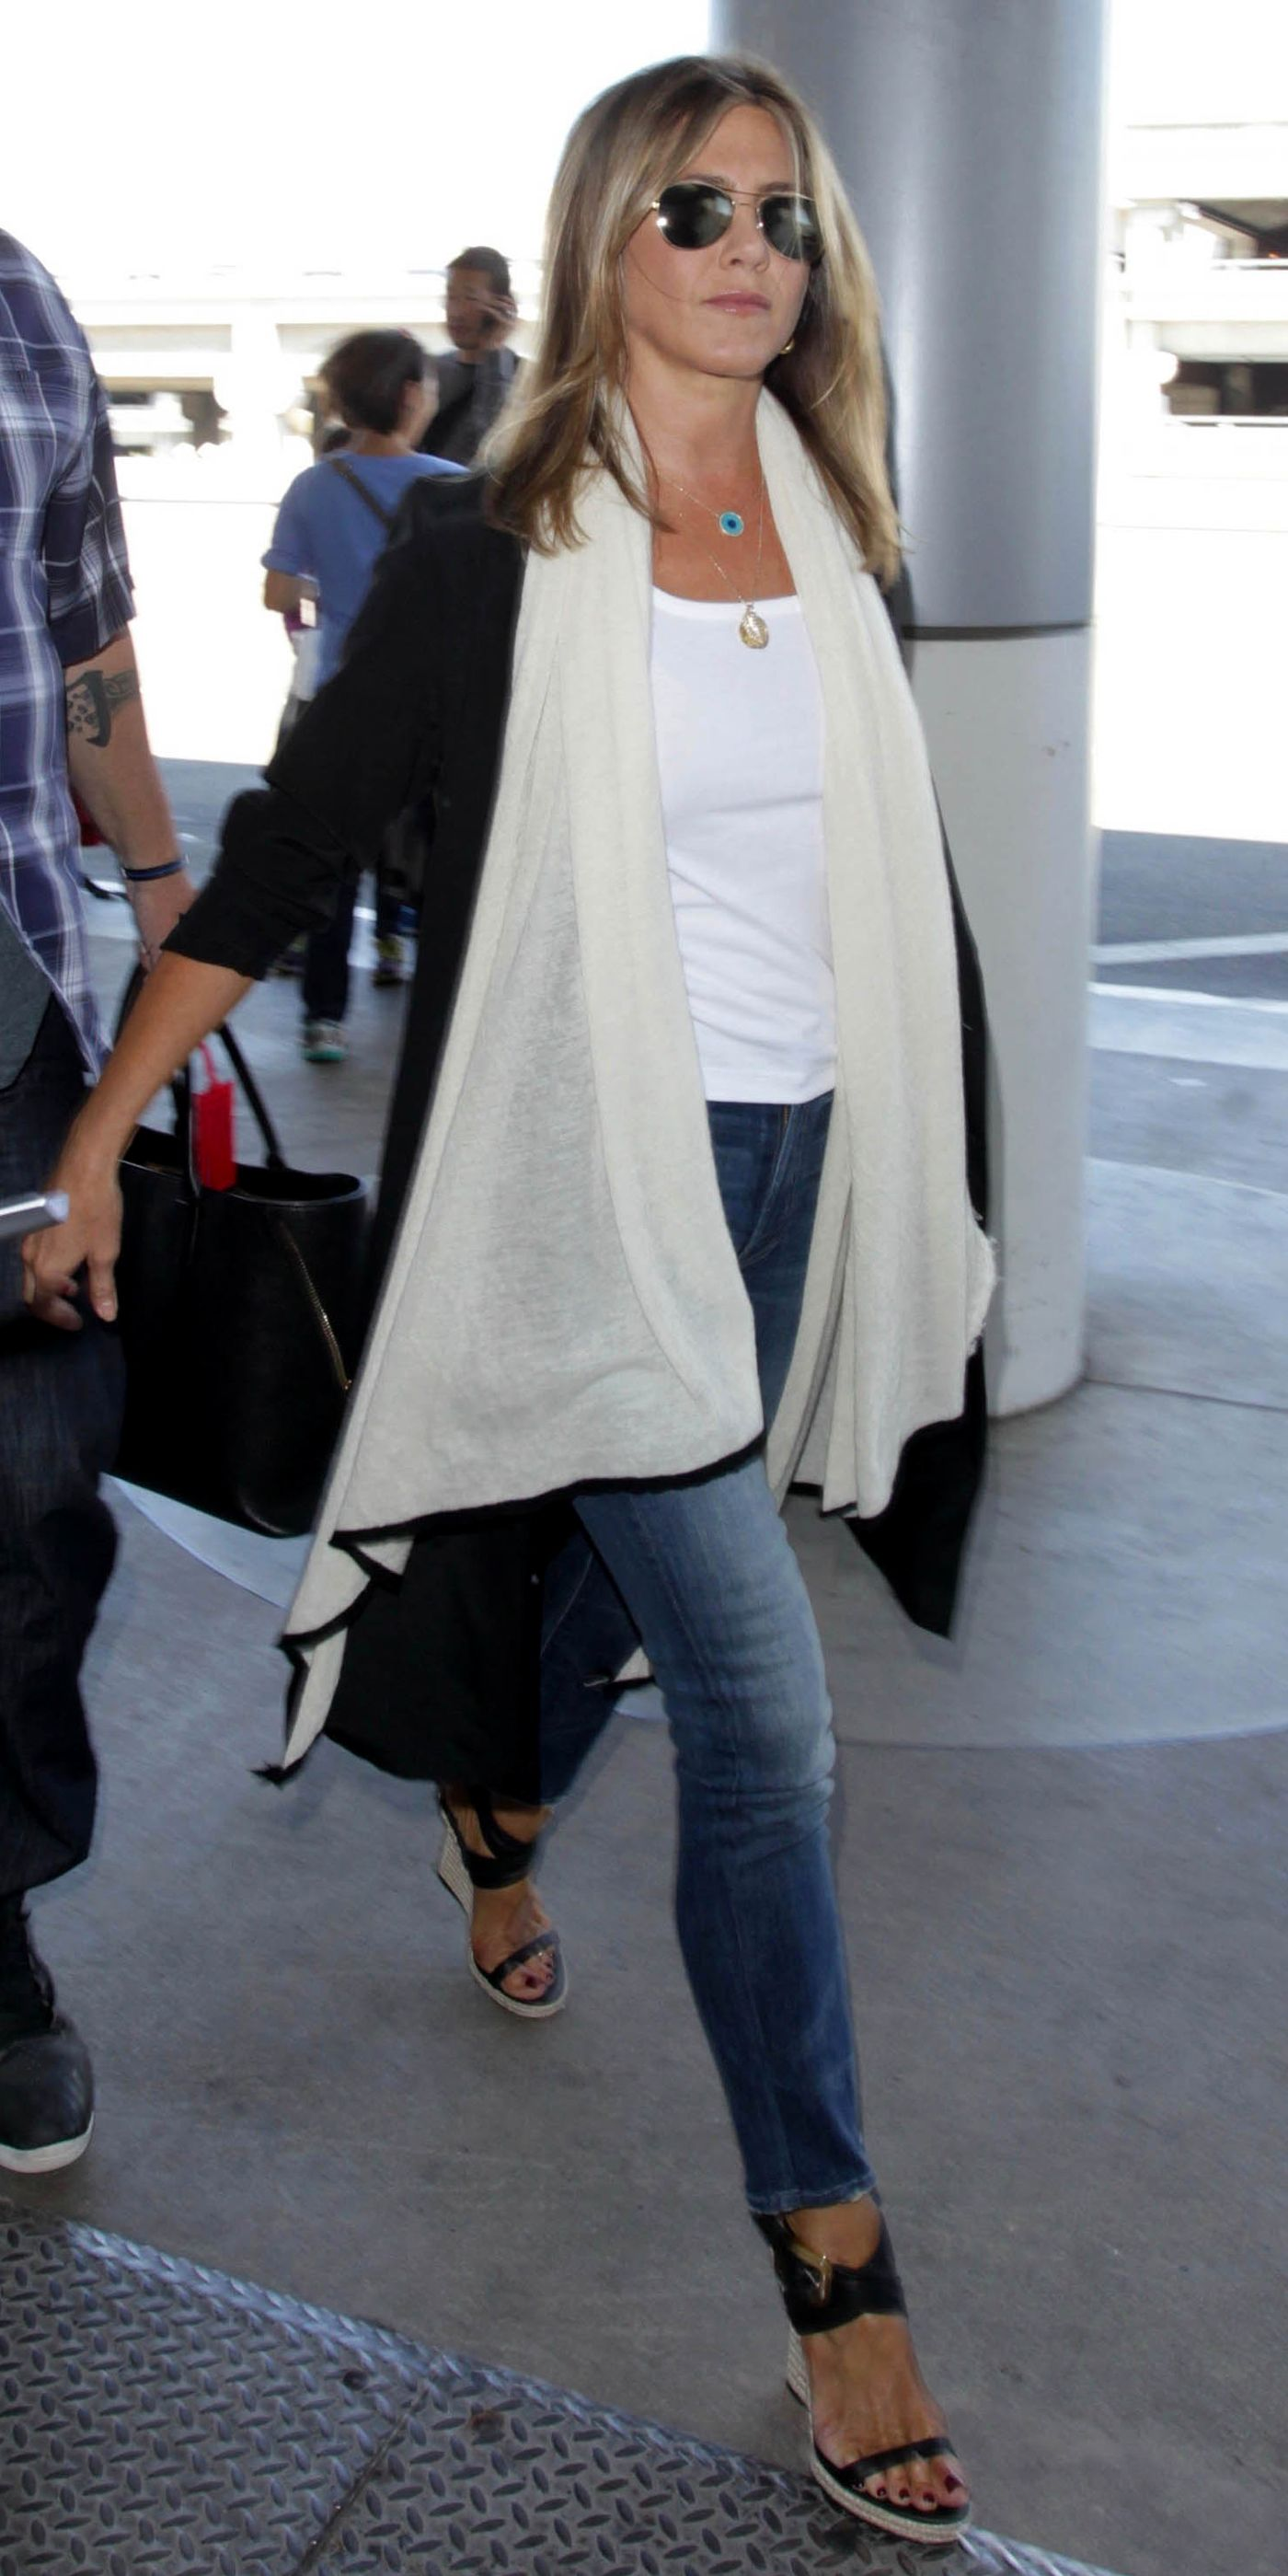 Jennifer Aniston 39 S Casual Chic Ensemble Will Give You Airport Style Envy Airport Style Casual